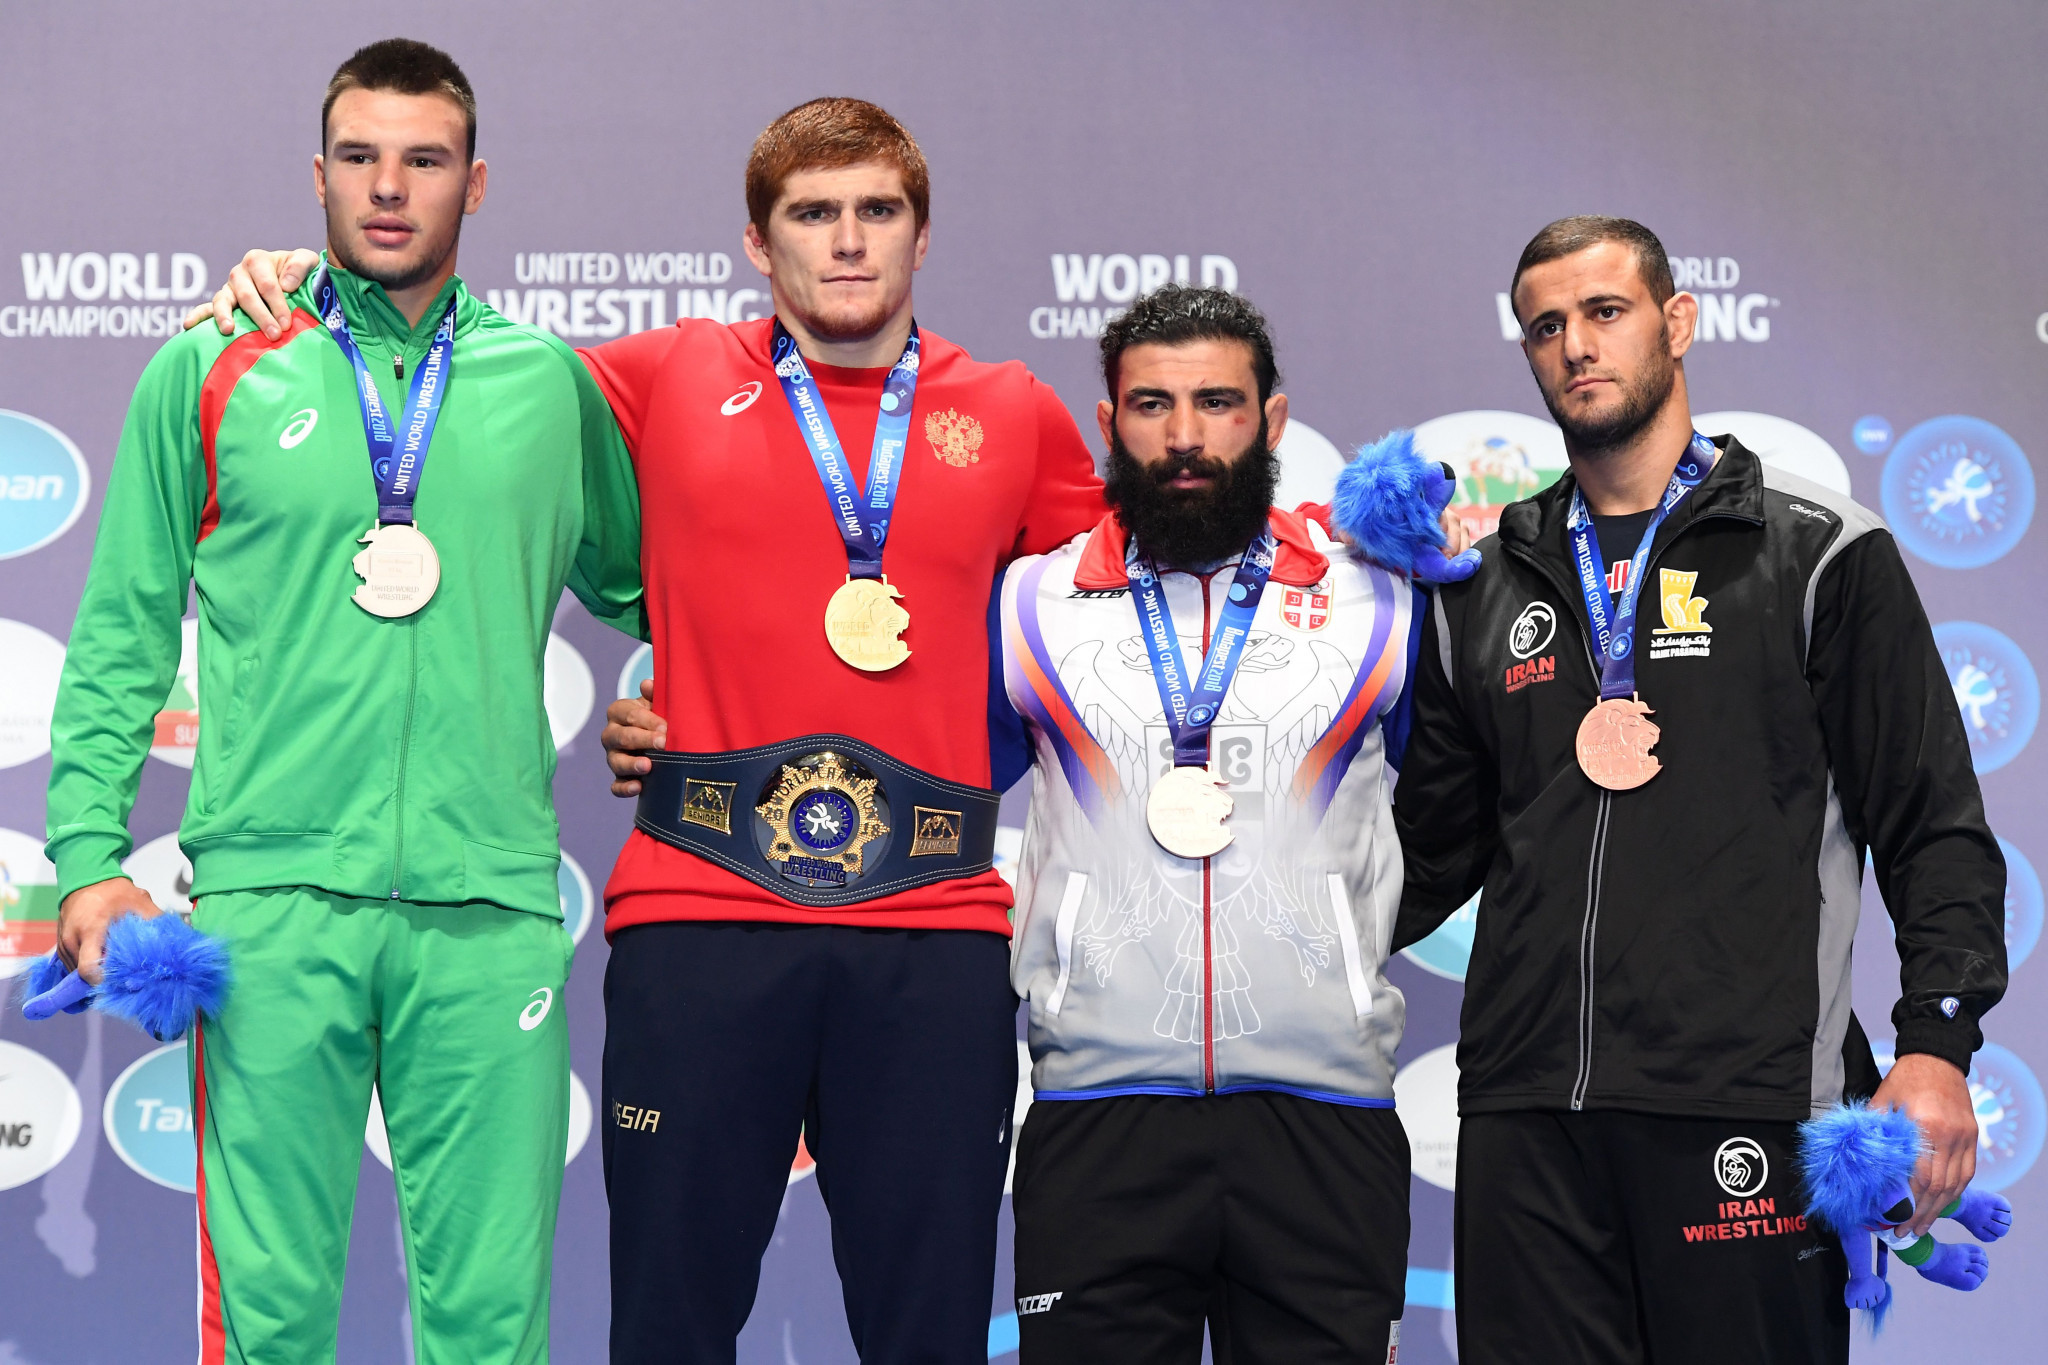 Mehdi Aliyari, right, was one of four Iranian bronze medallists at the World Wrestling Championships in Budapest ©Getty Images